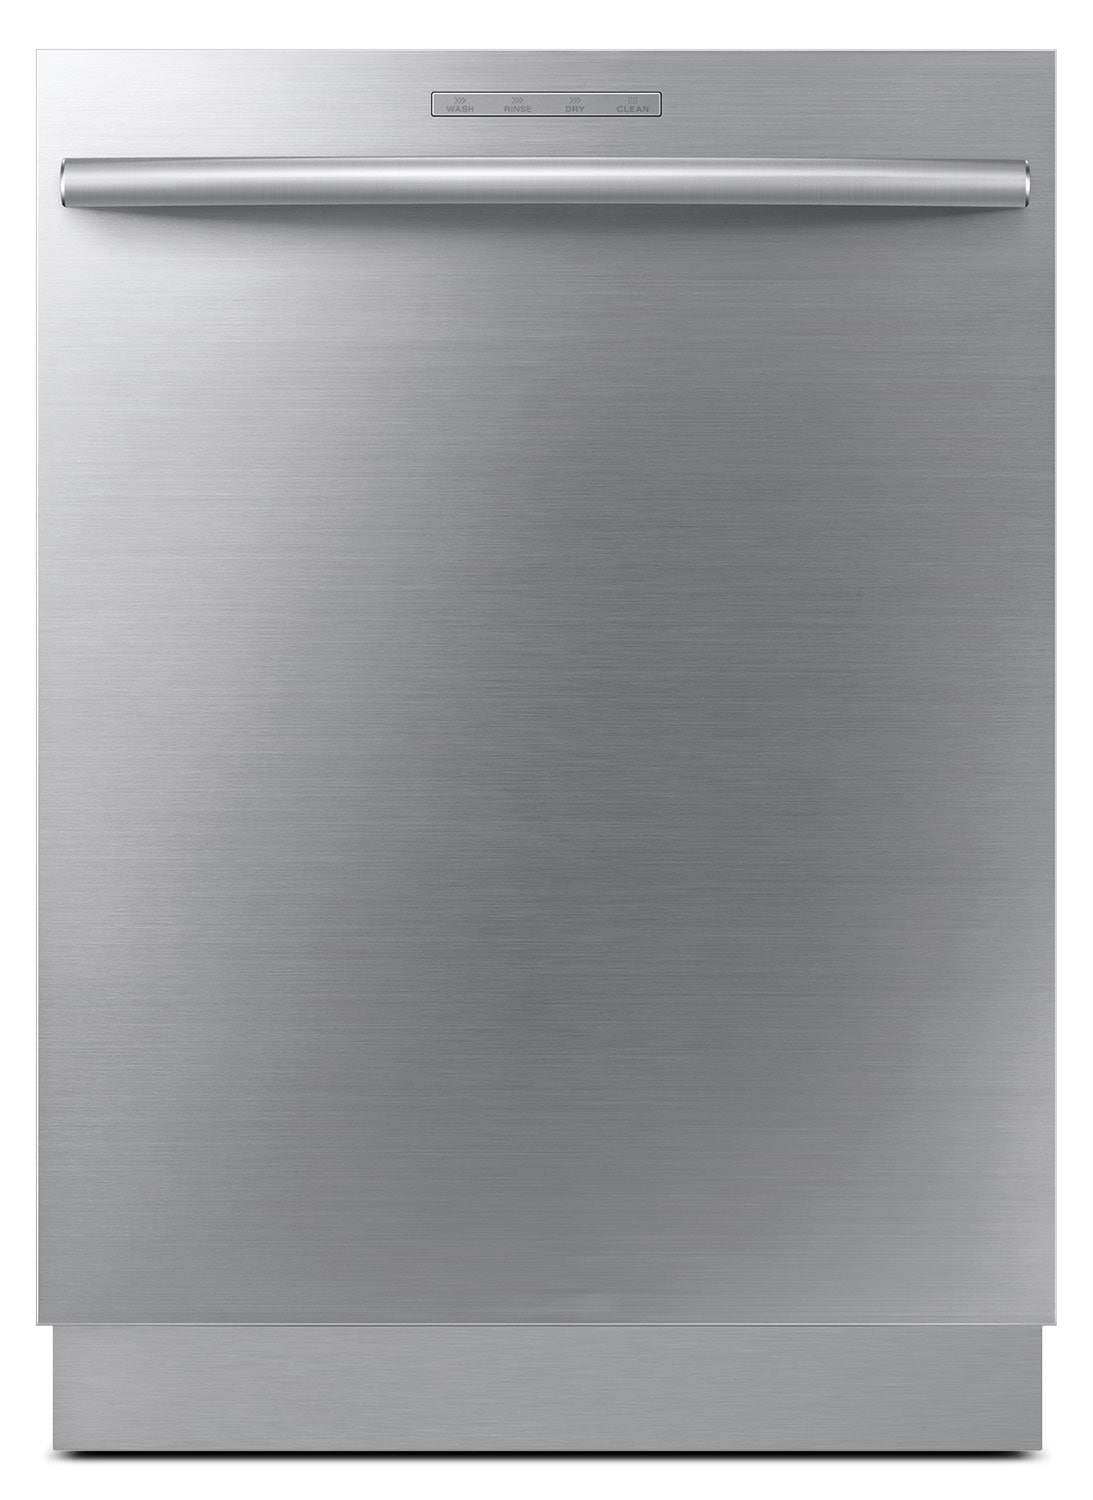 "Clean-Up - Samsung Stainless Steel 24"" Dishwasher - DW80F800UWS"